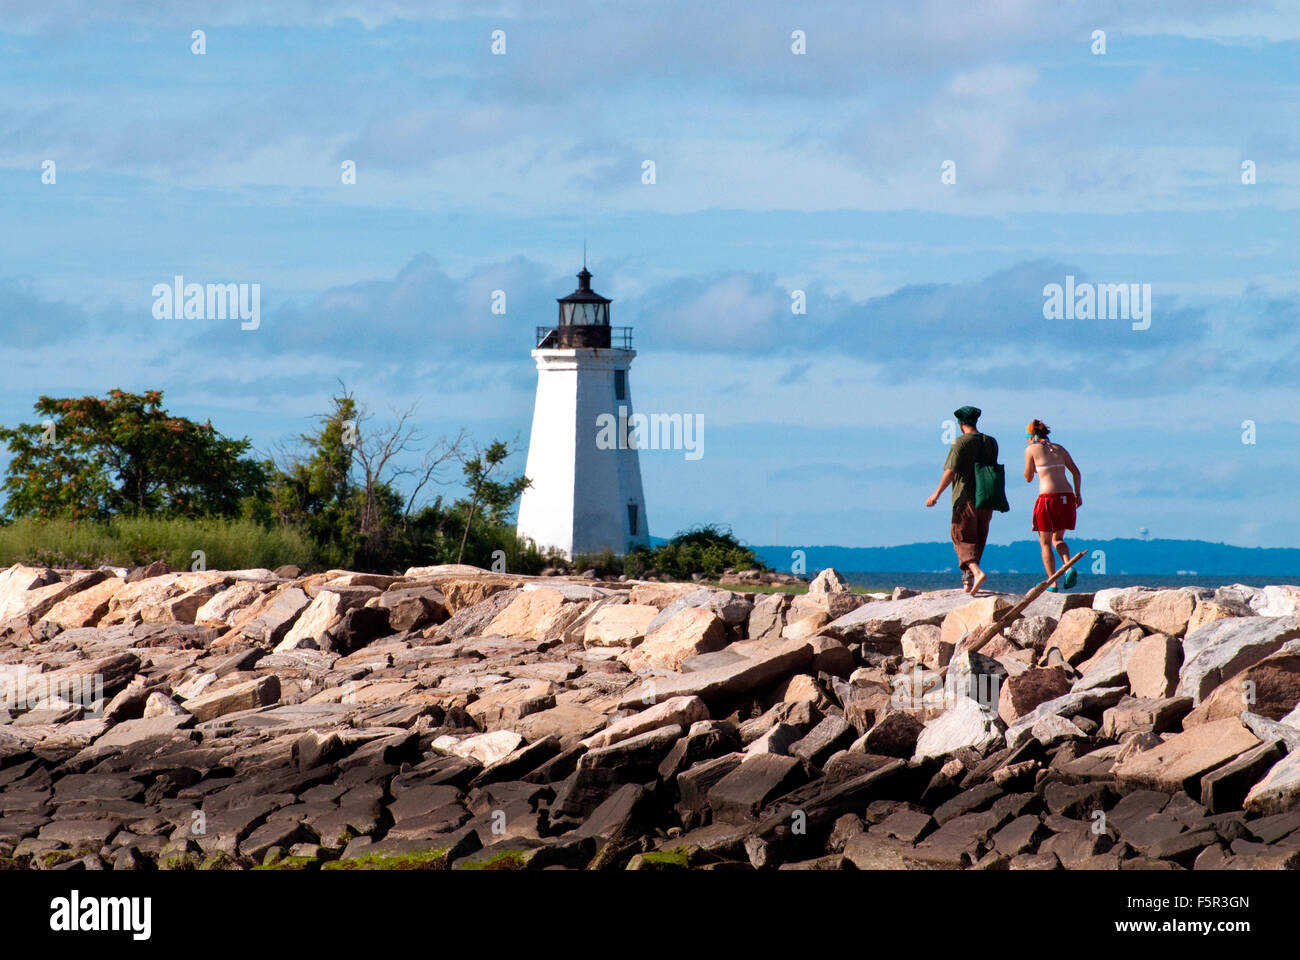 Hiking to Black Rock Harbor light along the mile-long jetty, in Bridgewater, Connecticut. Stock Photo